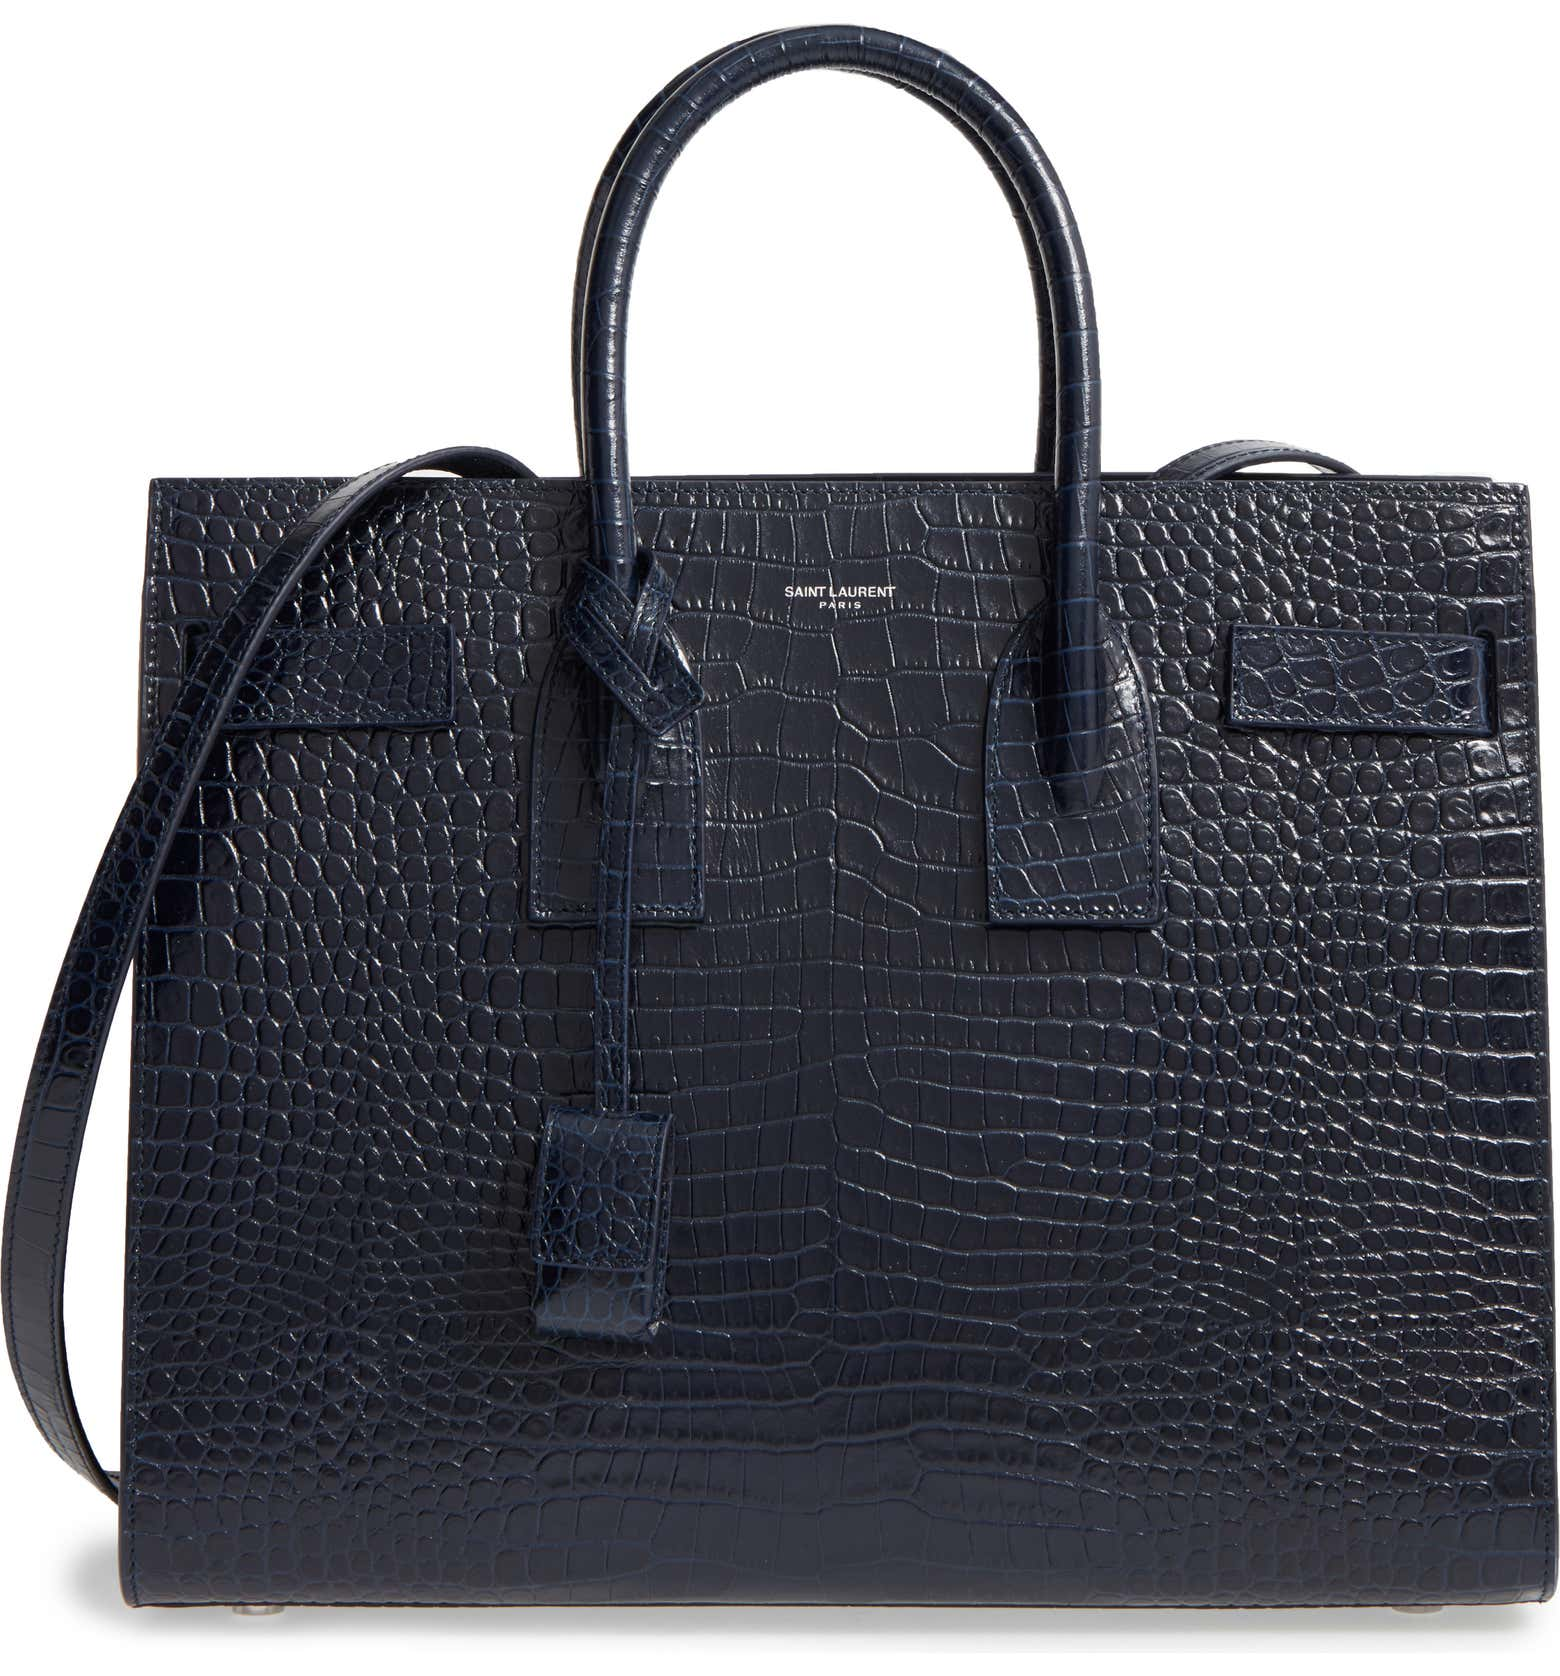 b484814674c Most Iconic Handbags Of All Time | Best Designer Bags | DexTrendy